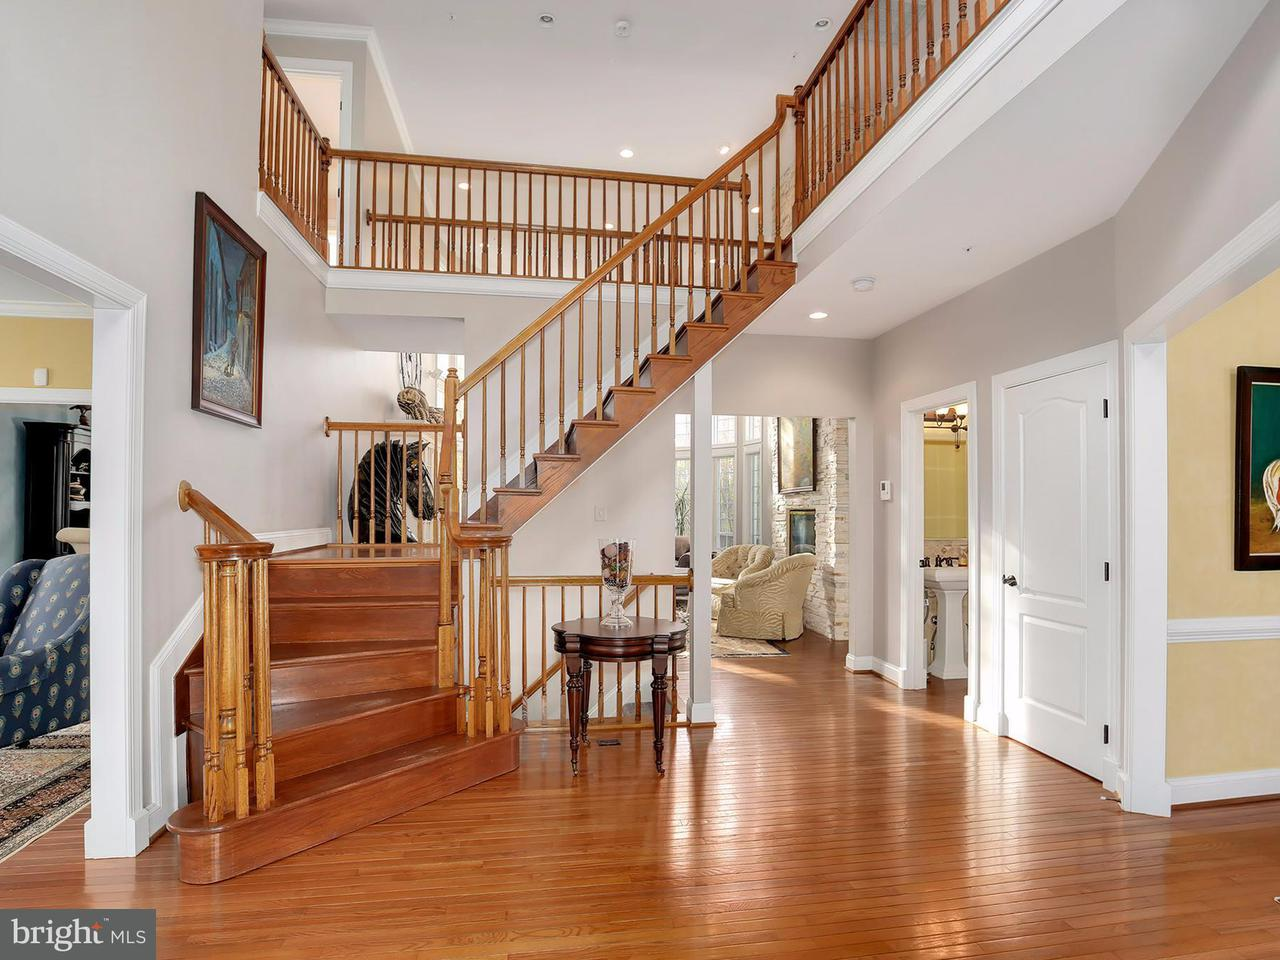 Single Family Home for Sale at 12613 QUOTING POET Court 12613 QUOTING POET Court Bowie, Maryland 20720 United States